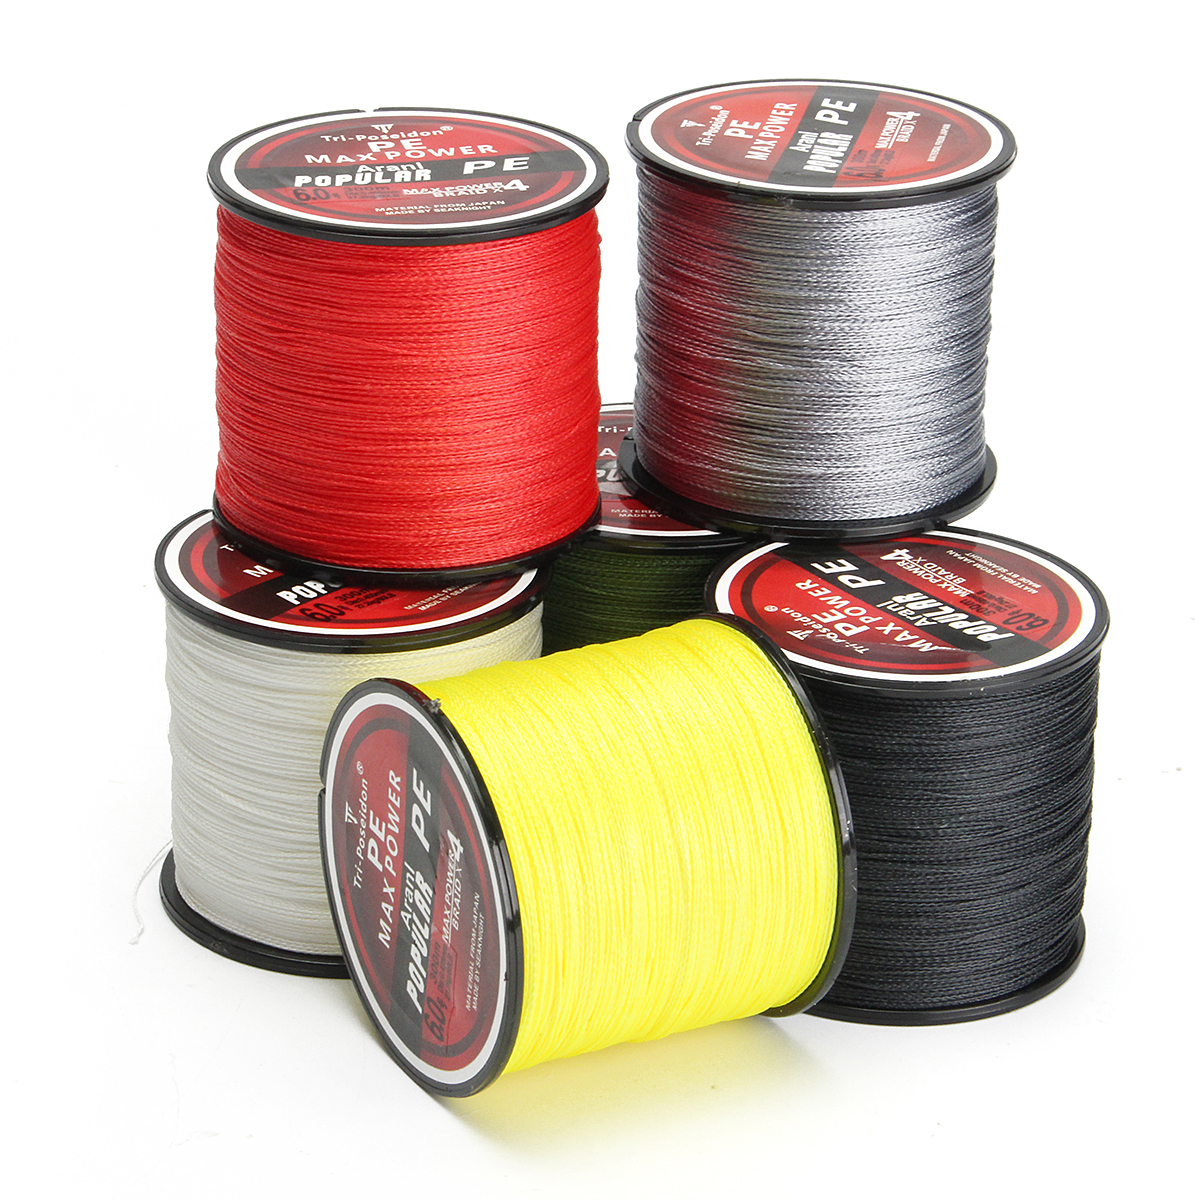 300M Super Strong 4 Strands PE Spectra Braided Wire Fish Rope Sea Fishing Lines 8-60LB